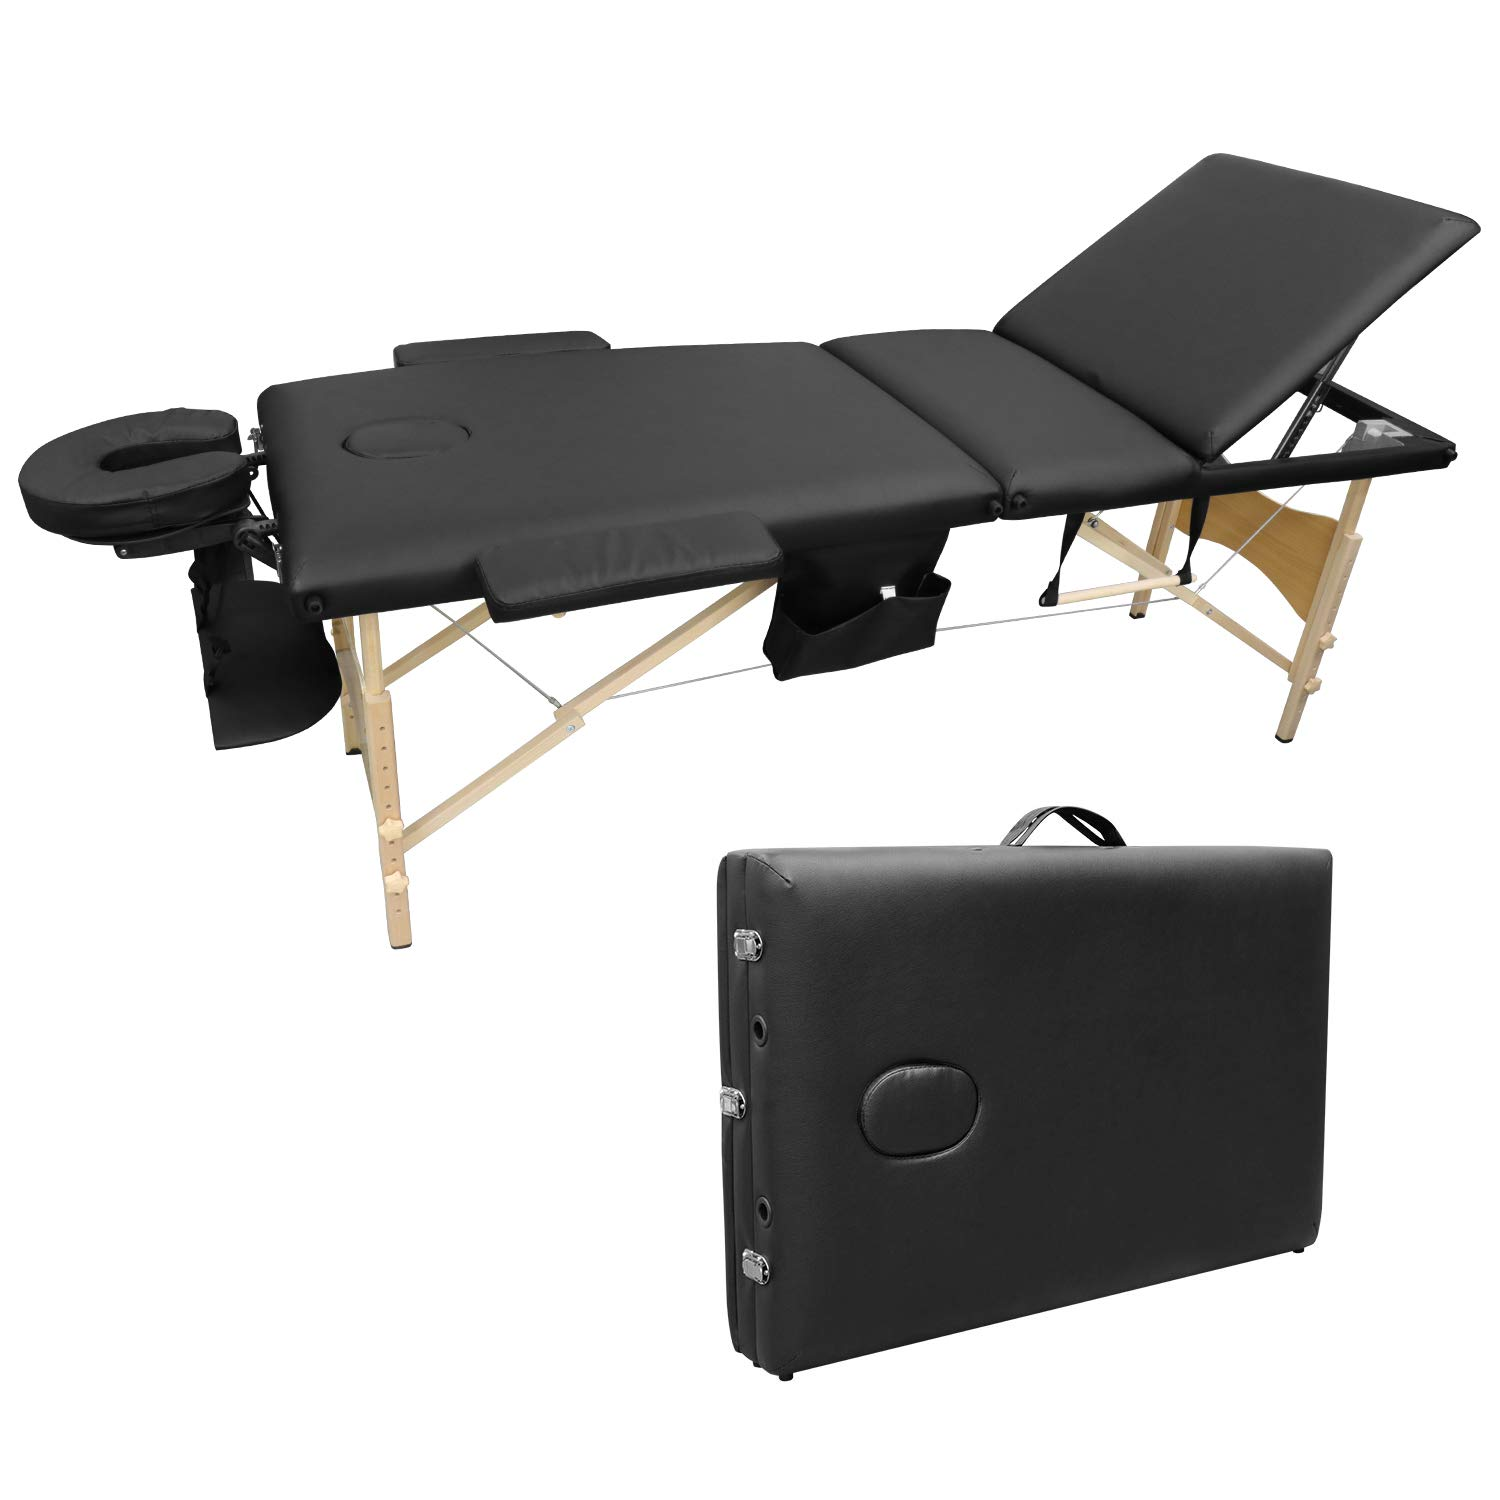 Ootori 3 Folding Massage Table Set Portable Adjustable Professional Massage Bed Facial SPA Tattoo Bed Carry Case W Sheet Cradle Bolsters Hanger,Wide Arms,73inch Black